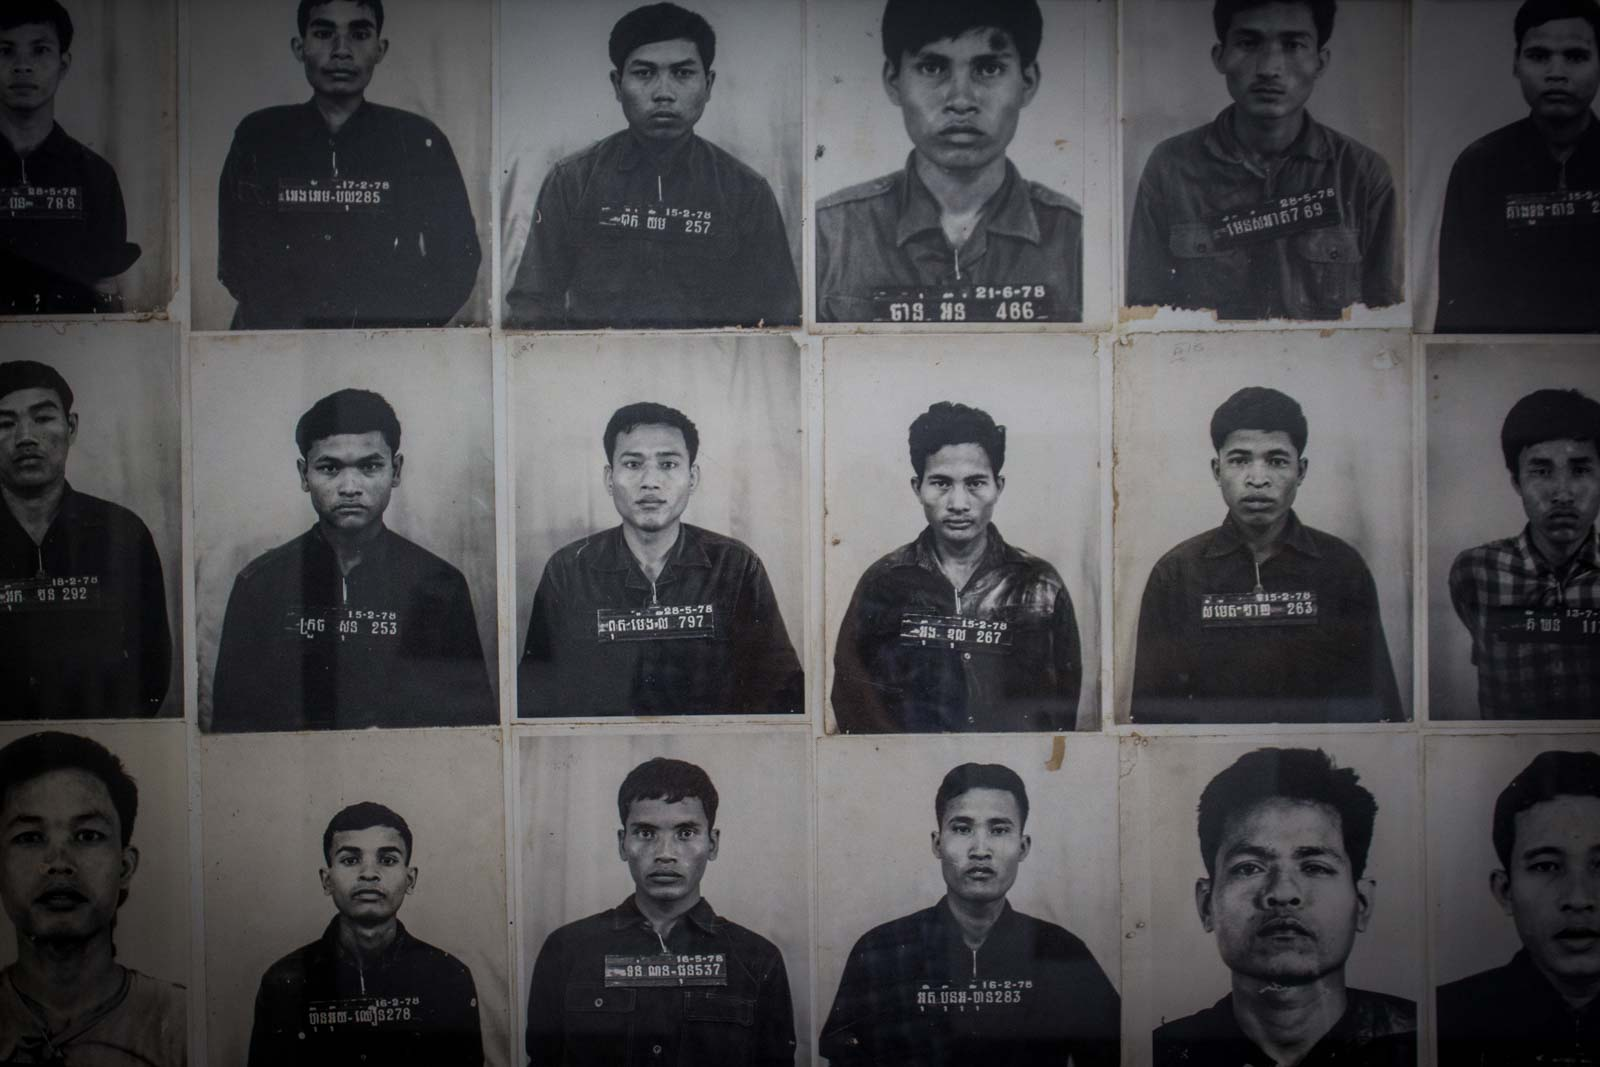 s21 prison, tuol sleng genocide museum, Phnom penh, cambodia